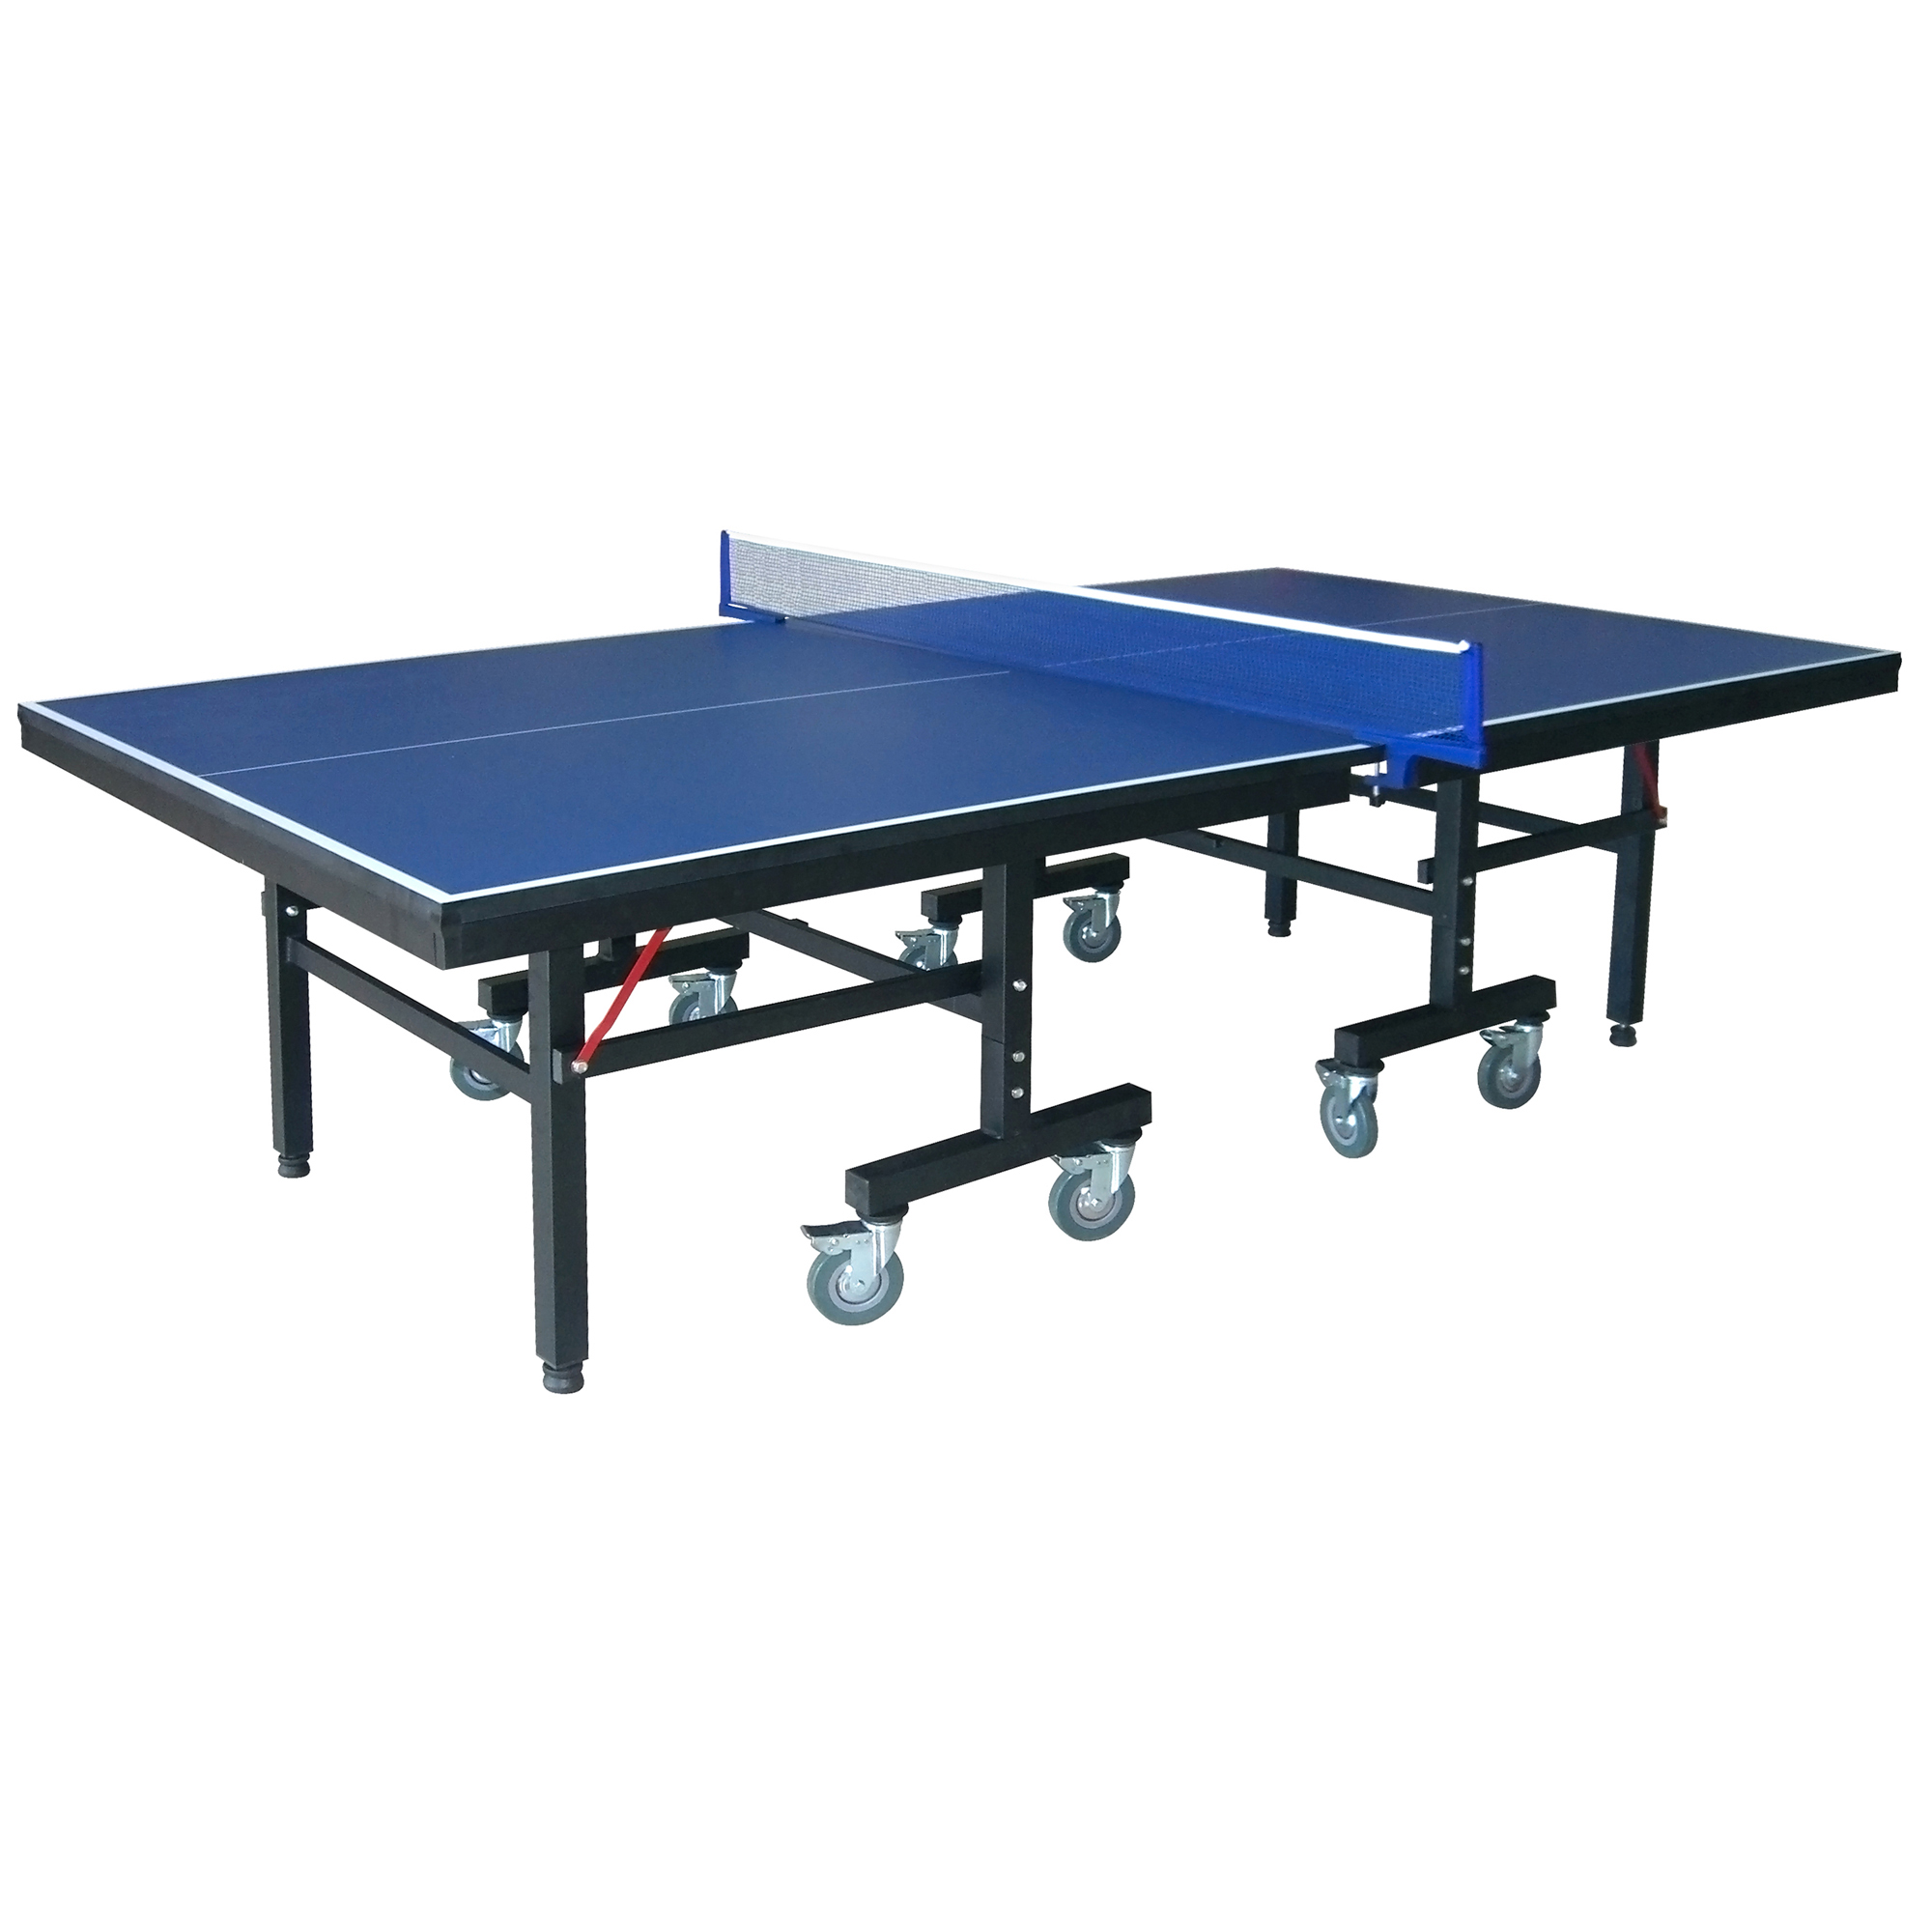 Hathaway Victory Professional 9-Foot Table Tennis Table with 25mm Thick Surface, 2-Inch Steel Supports, Free Paddles, Balls and Net